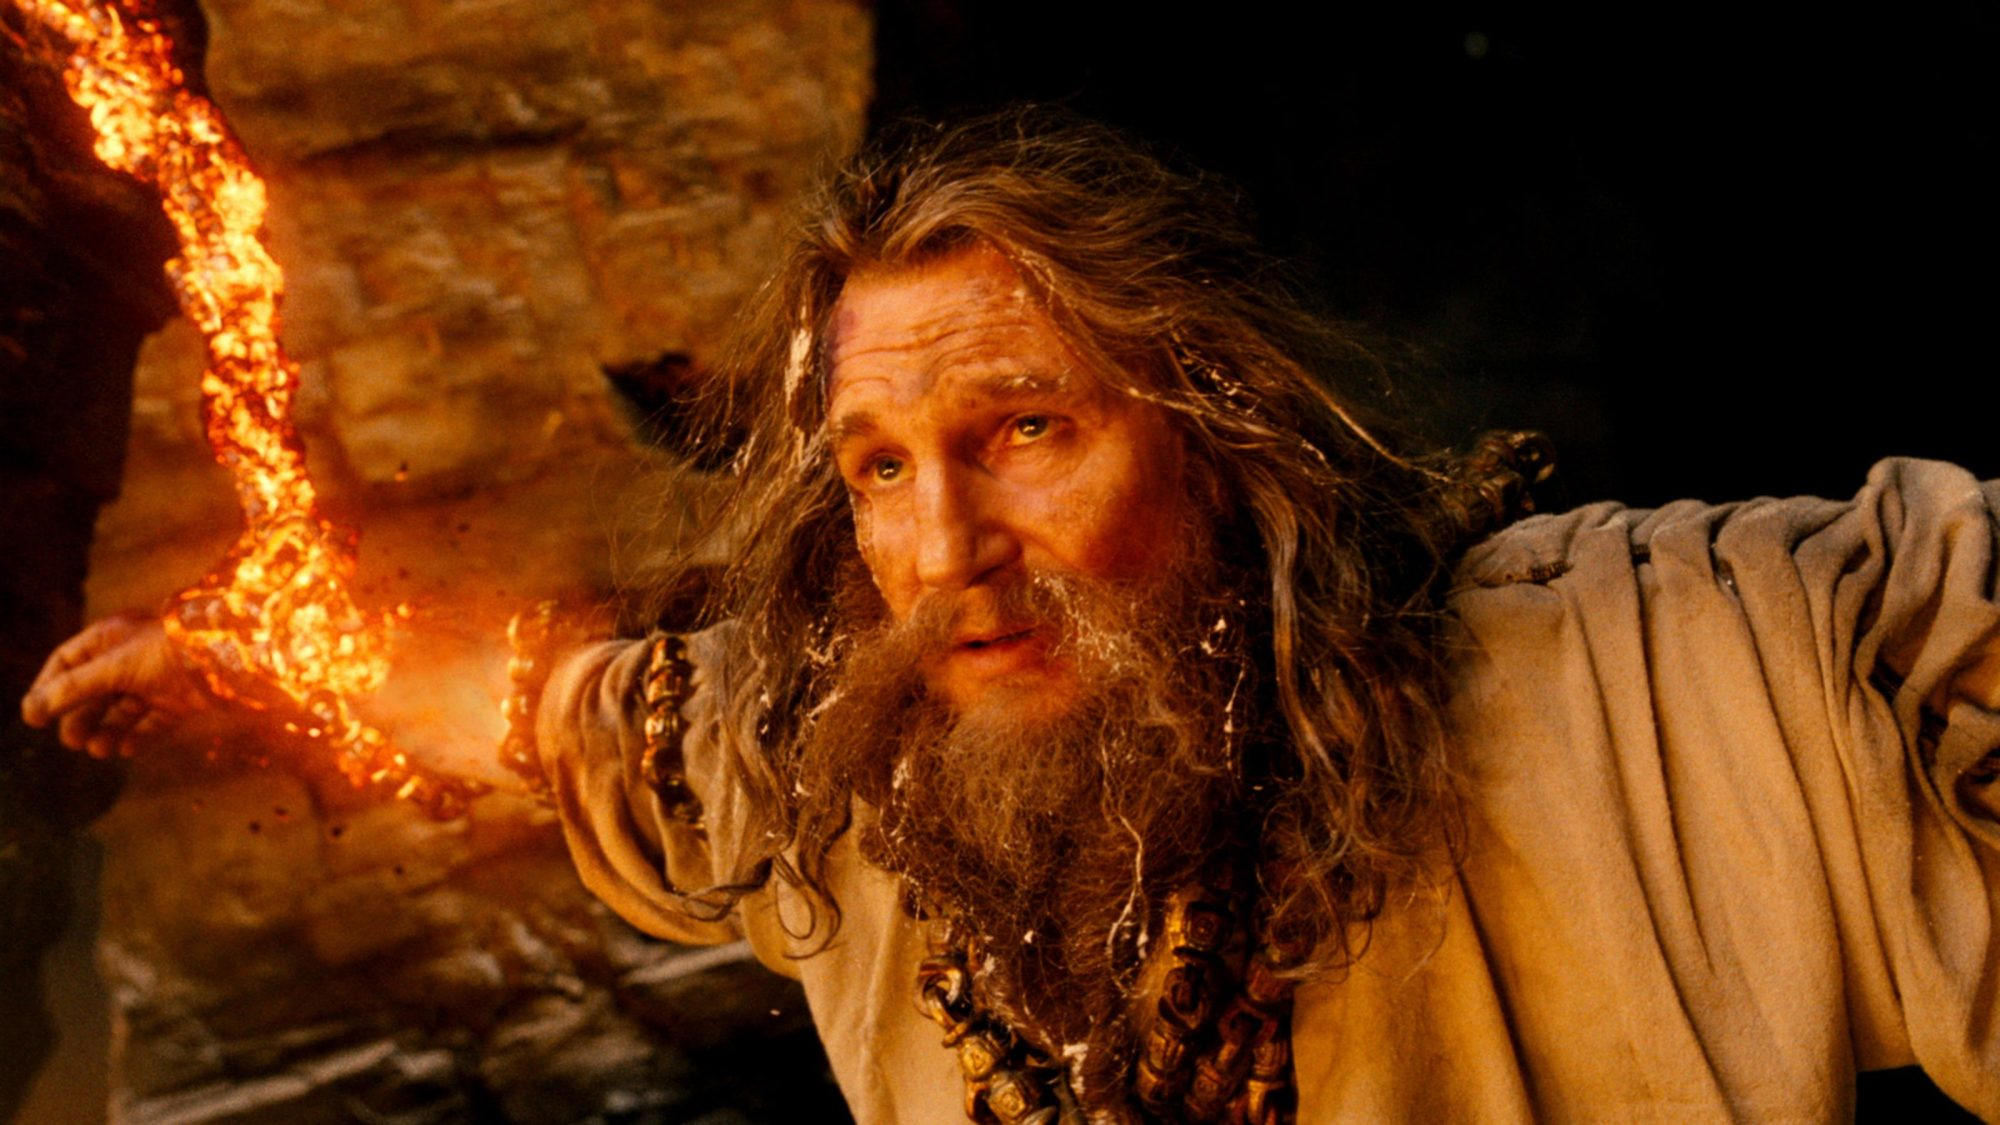 WRATH OF THE TITANS, Liam Neeson, 2012. ©Warner Bros. Pictures./Courtesy Everett Collection